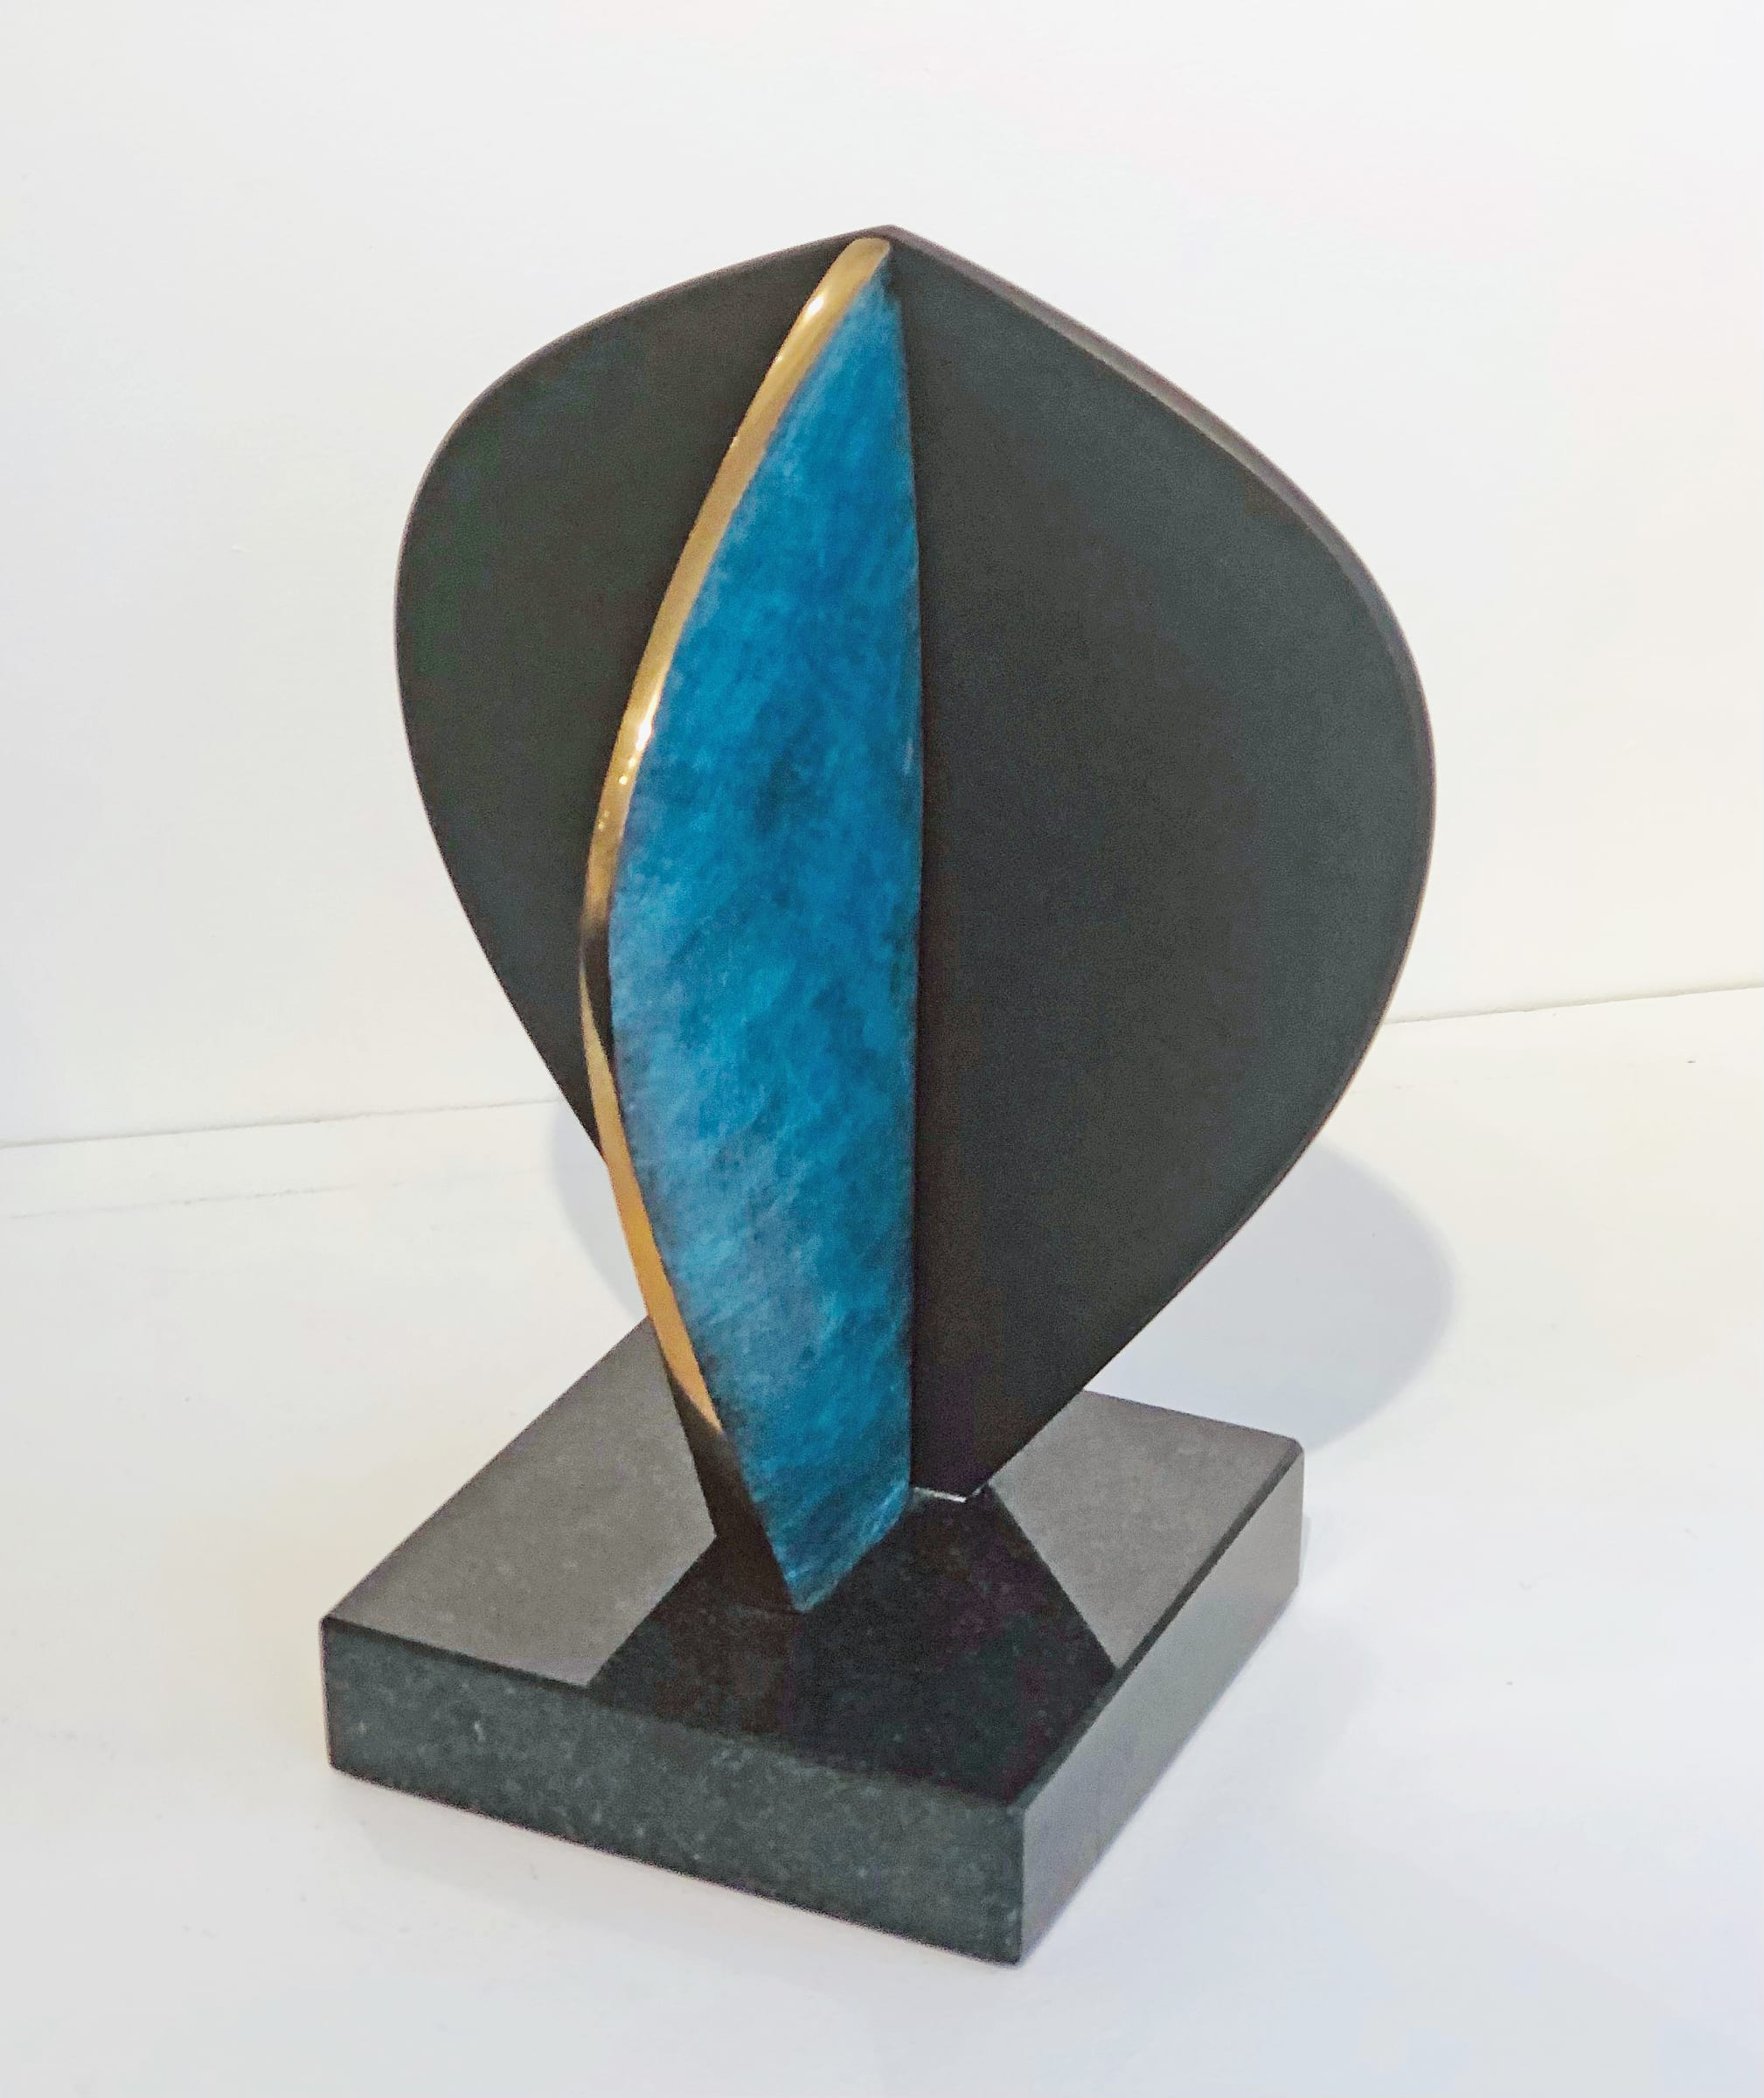 """<span class=""""link fancybox-details-link""""><a href=""""/artists/69-margaret-lovell-d.litt.-hon-frbs-rwa/works/7570-margaret-lovell-d.litt.-hon-frbs-rwa-omaha-verde-2014/"""">View Detail Page</a></span><div class=""""artist""""><strong>Margaret Lovell D.Litt. Hon FRBS RWA</strong></div> b. 1939 <div class=""""title""""><em>Omaha Verde</em>, 2014</div> <div class=""""signed_and_dated"""">Stamped<br /> Patinated bronze on slate base</div> <div class=""""dimensions"""">h.24.5 cm x w. 12 cm (base)</div> <div class=""""edition_details"""">Unique</div><div class=""""price"""">£2,000.00</div><div class=""""copyright_line"""">Copyright The Artist</div>"""